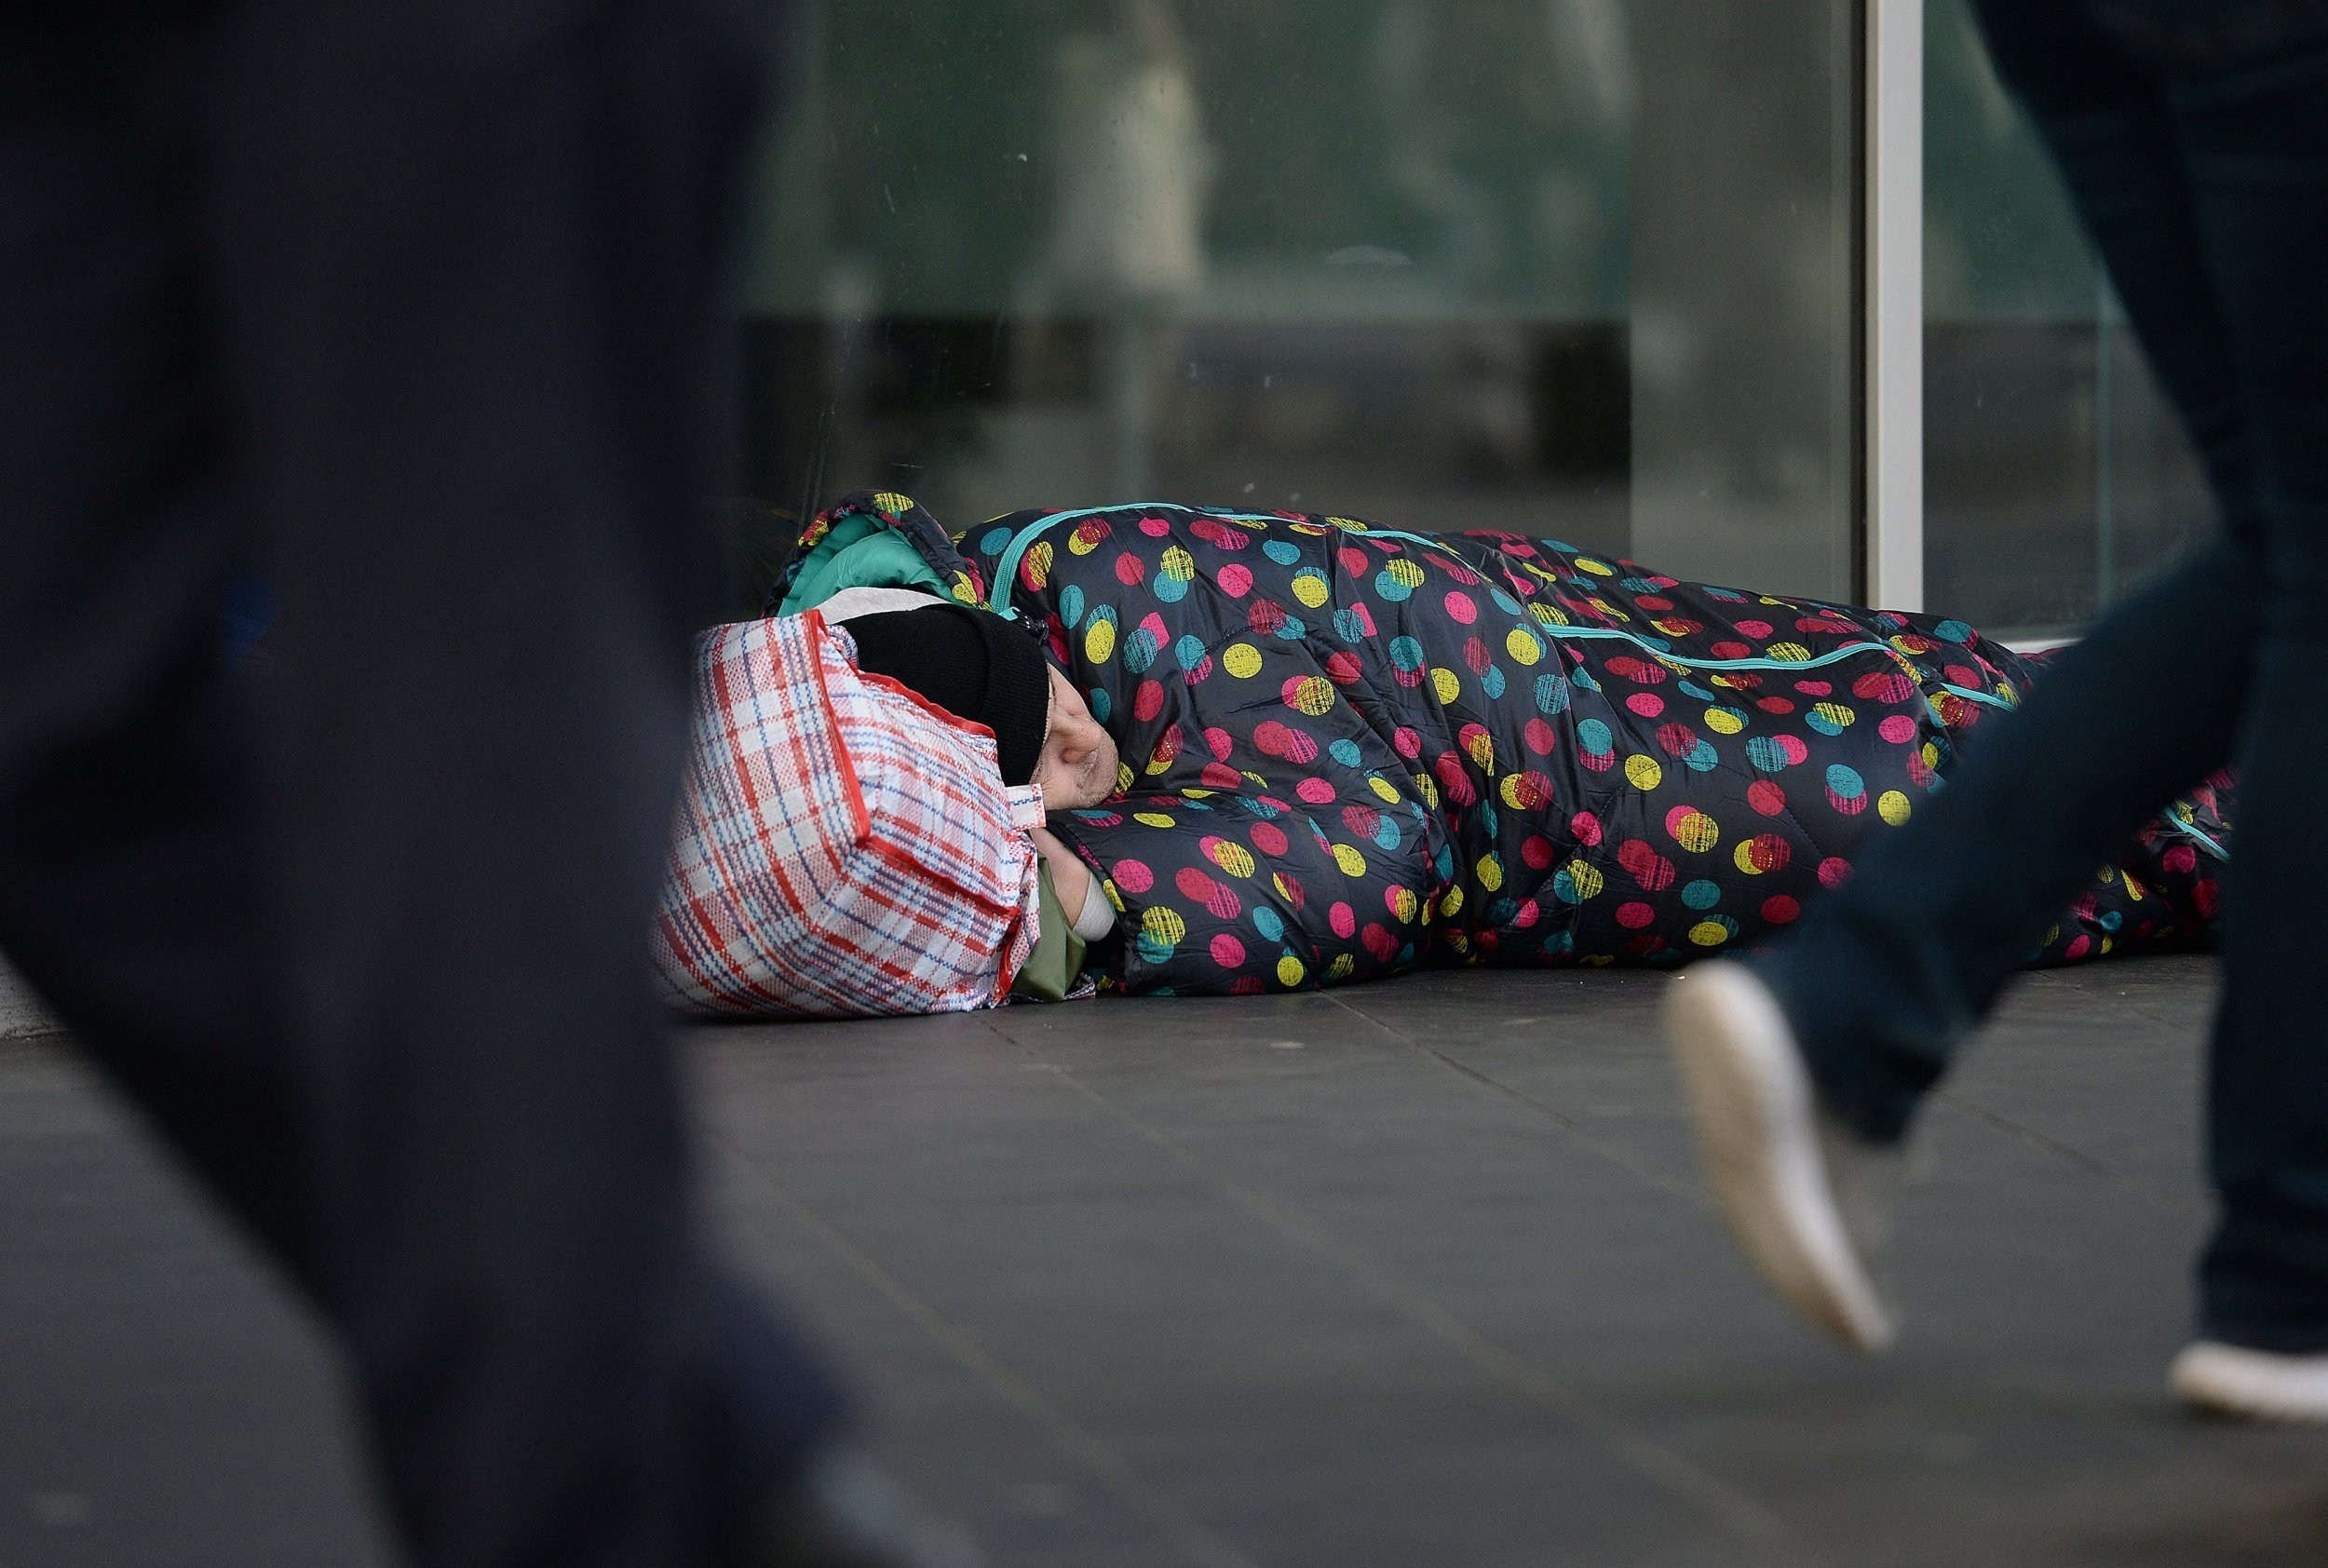 Plan to build 3,300 homes in a year and 'end rough sleeping for good'